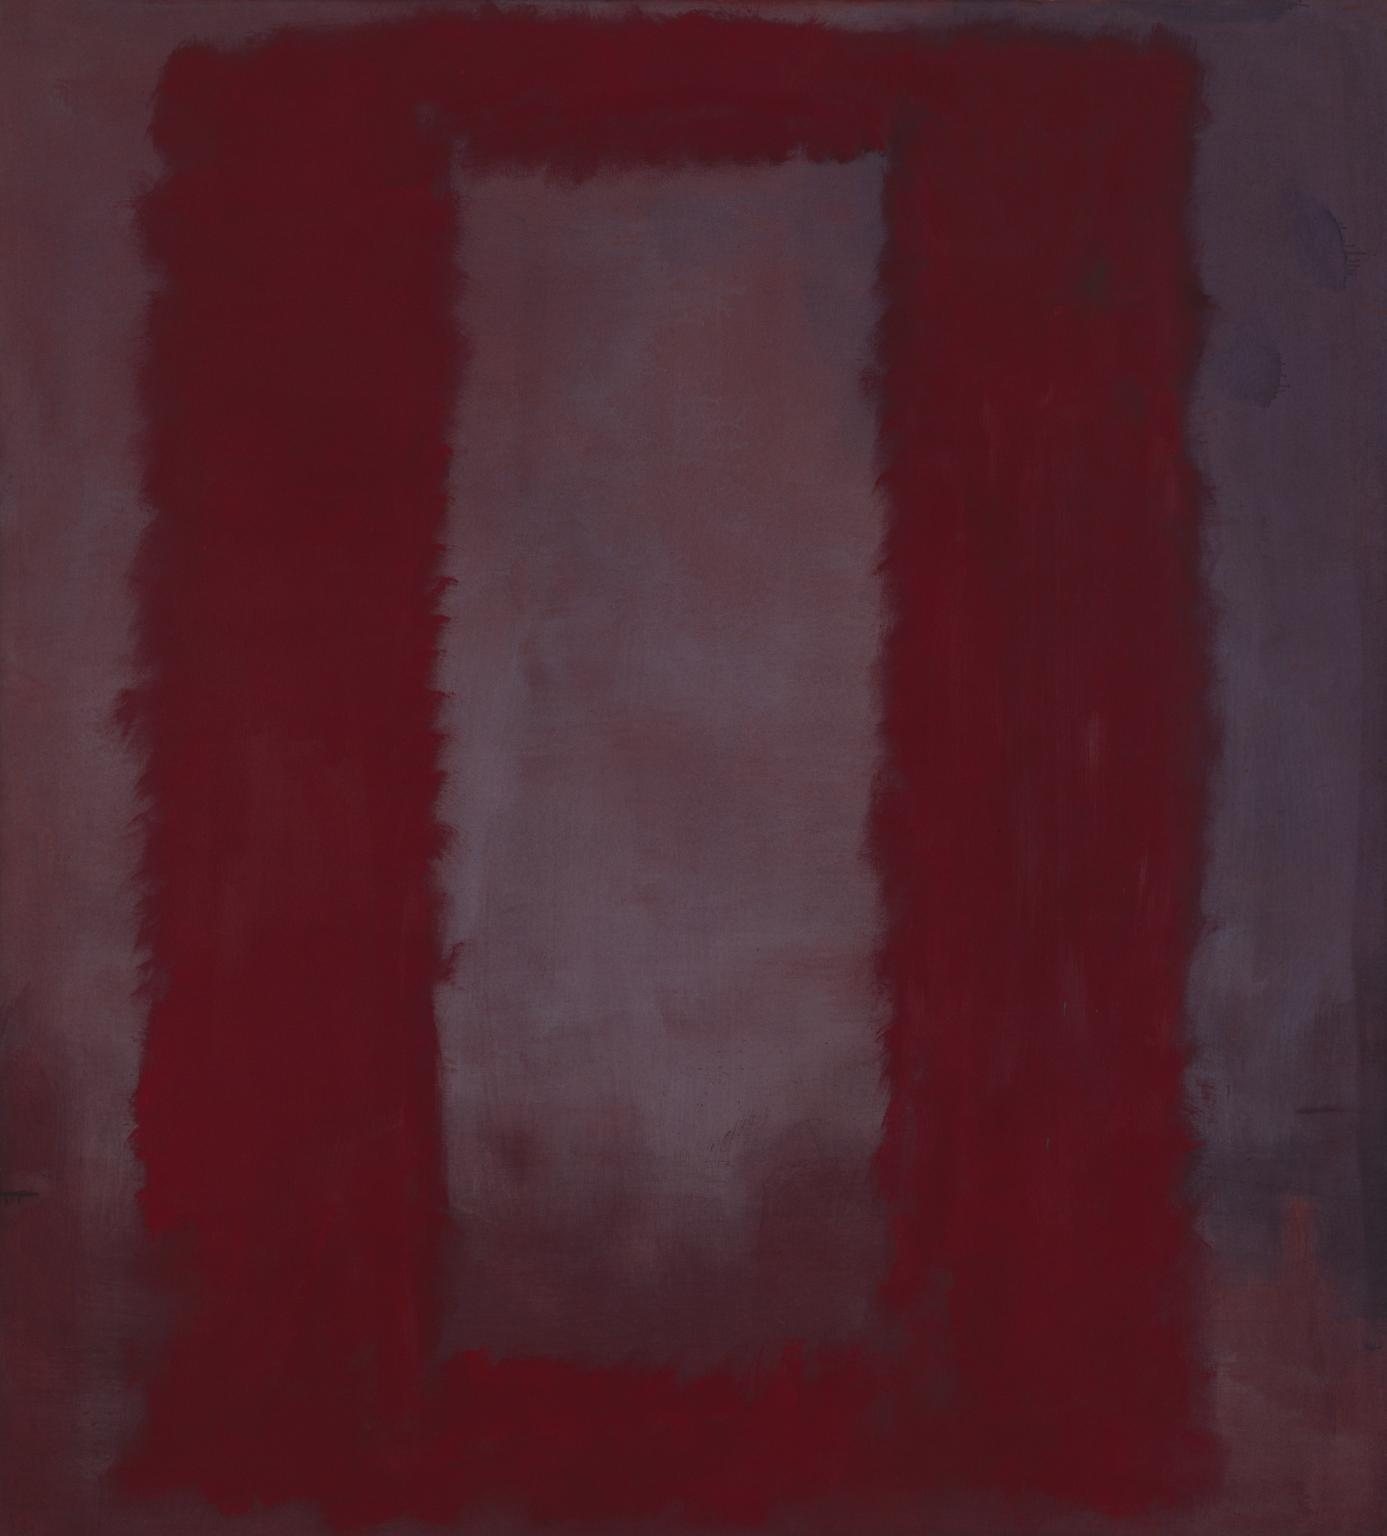 Mark Rothko, Red on Maroon, 1959